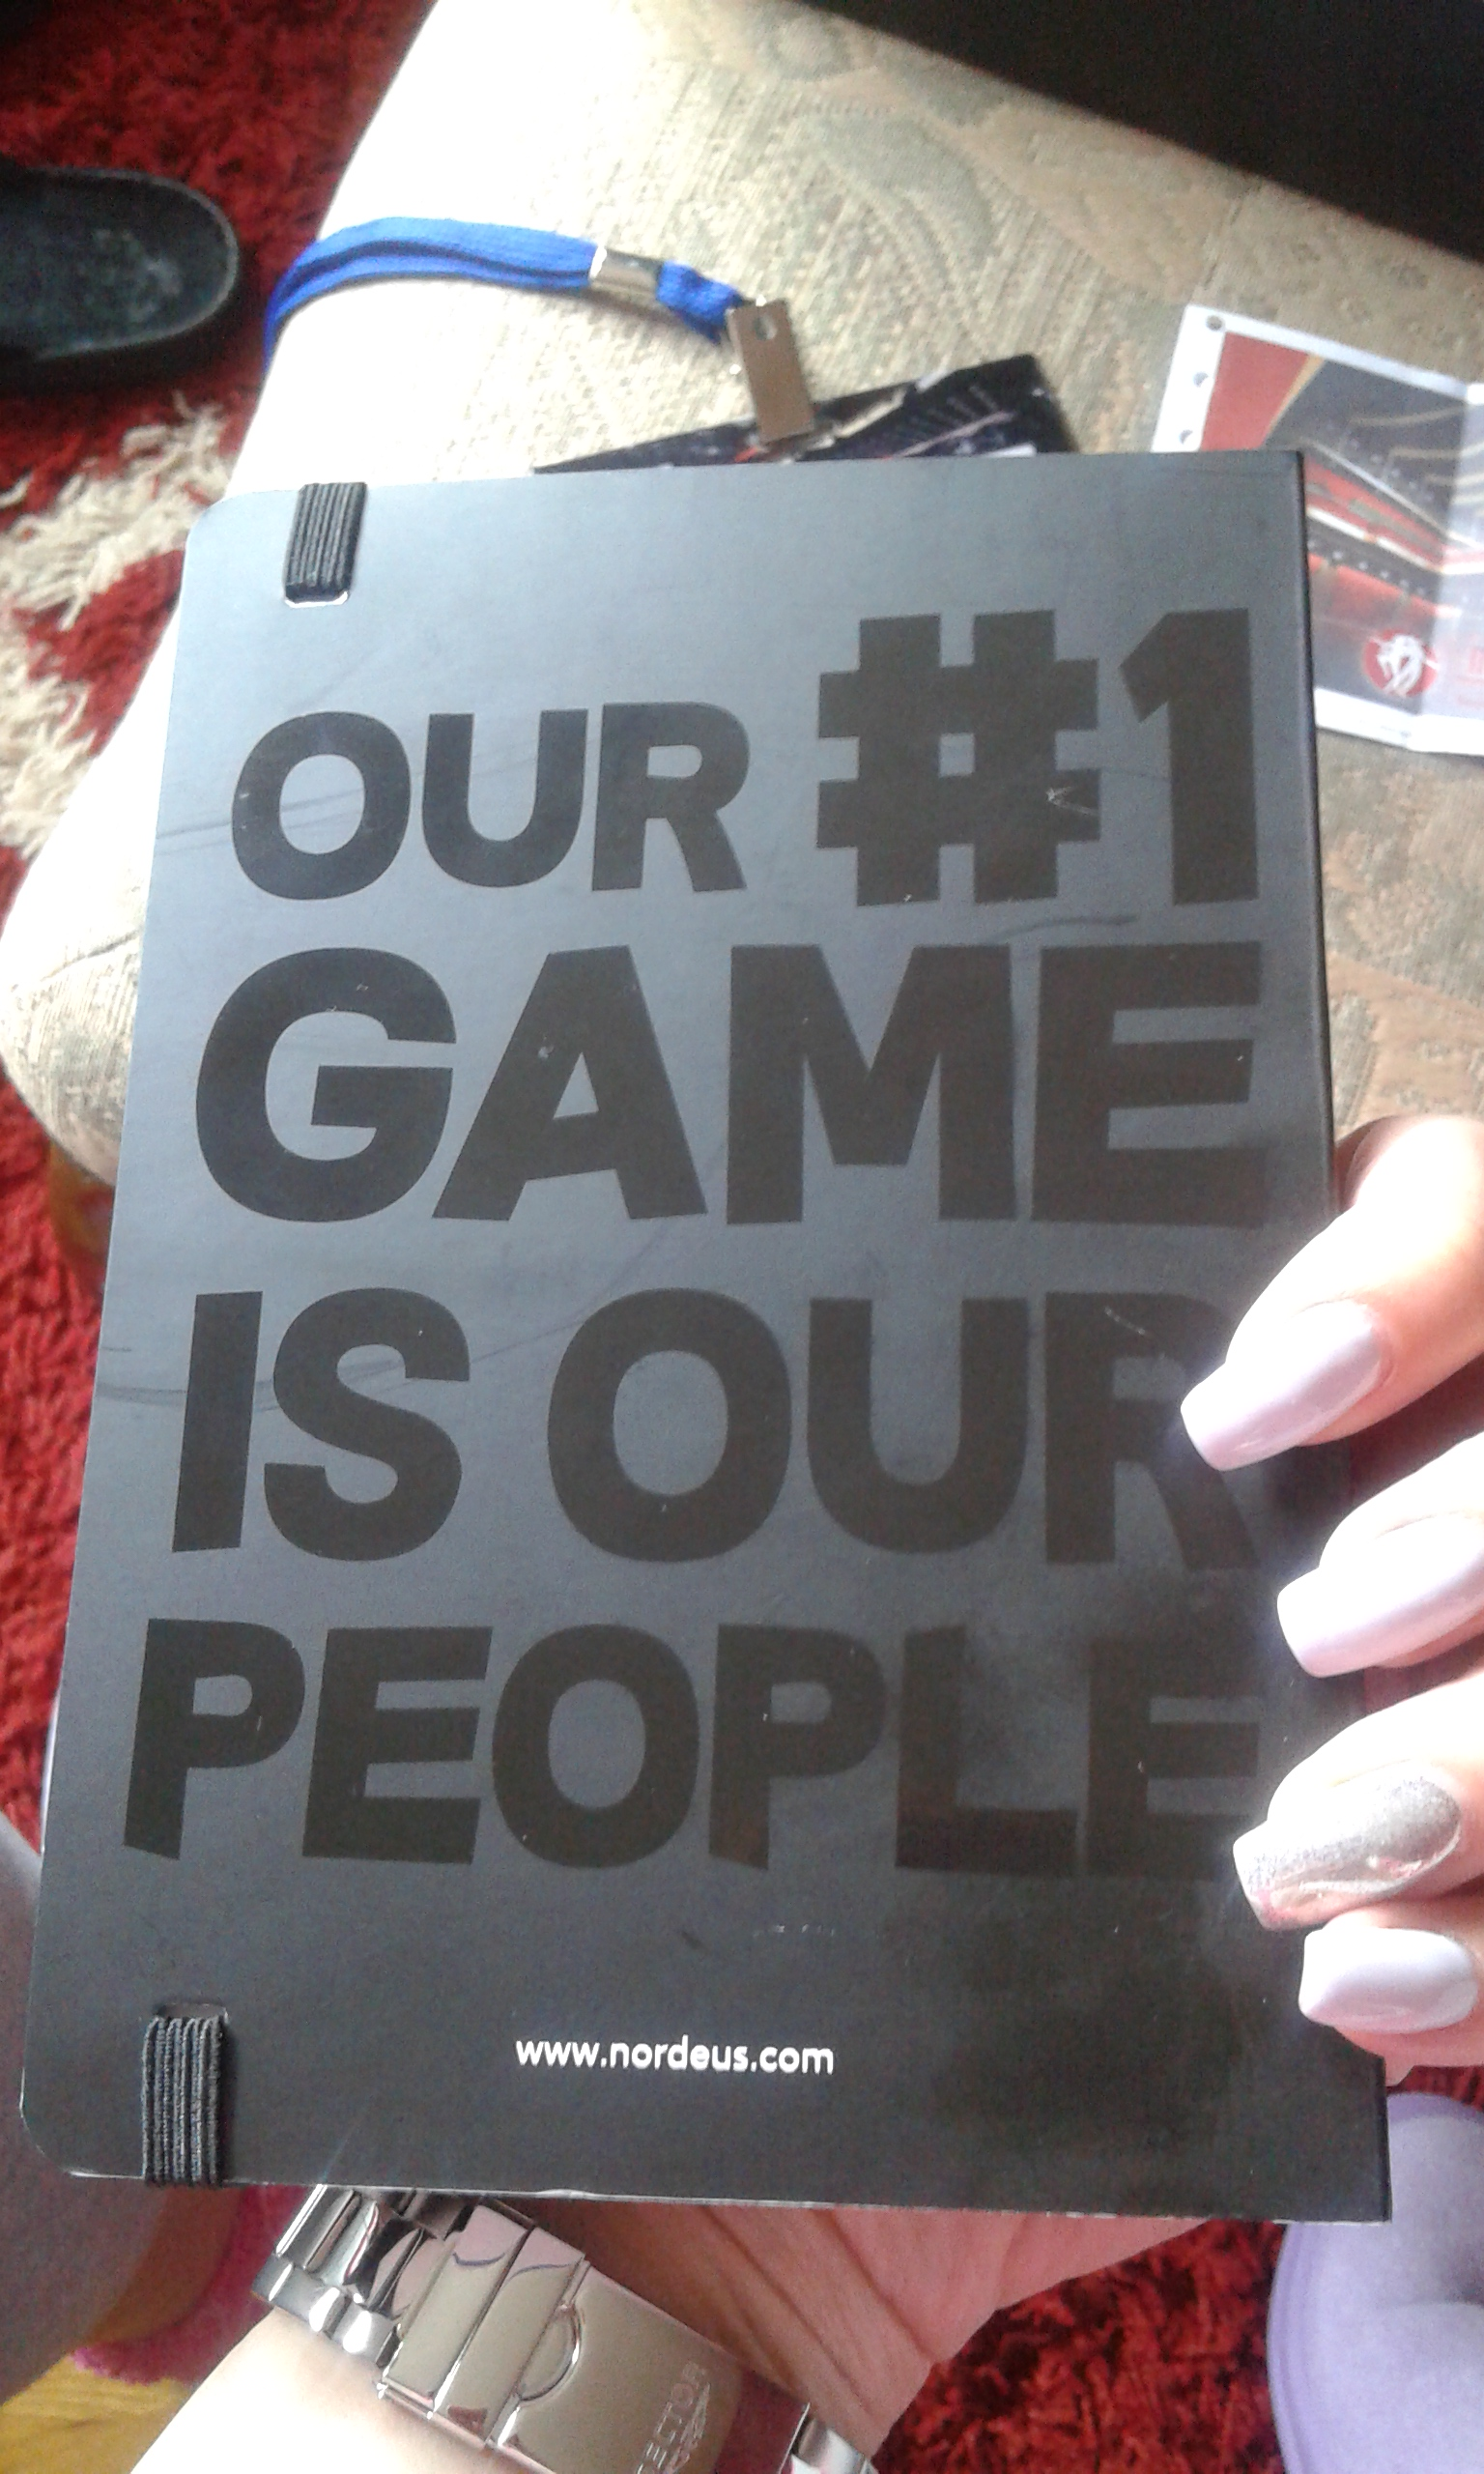 Our #1 game is our people